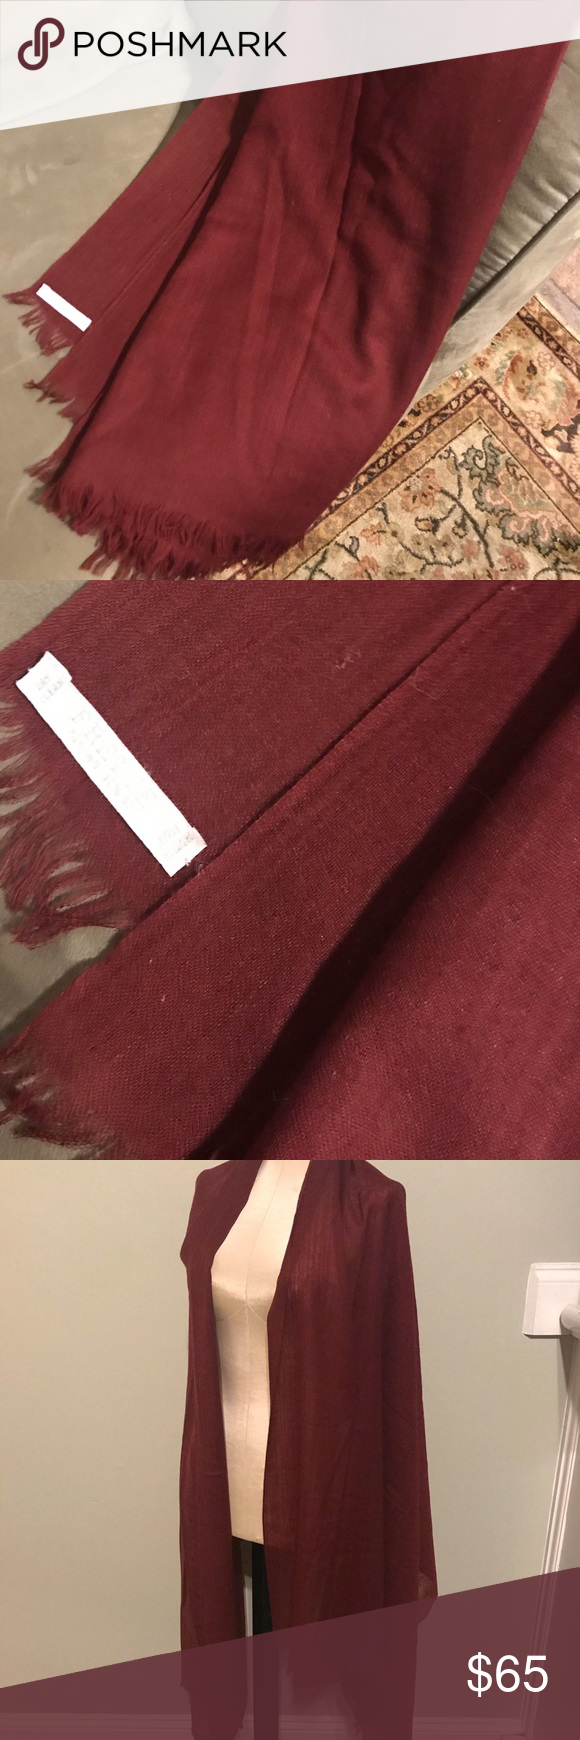 """387a21f885322 Fretted Italy Silk Cashmere Scarf Wrap Shawl Great condition Measures  35""""x86"""" Silk cashmere Lite weight Shawl/wrap /scarf Made in Italy frette  italy ..."""